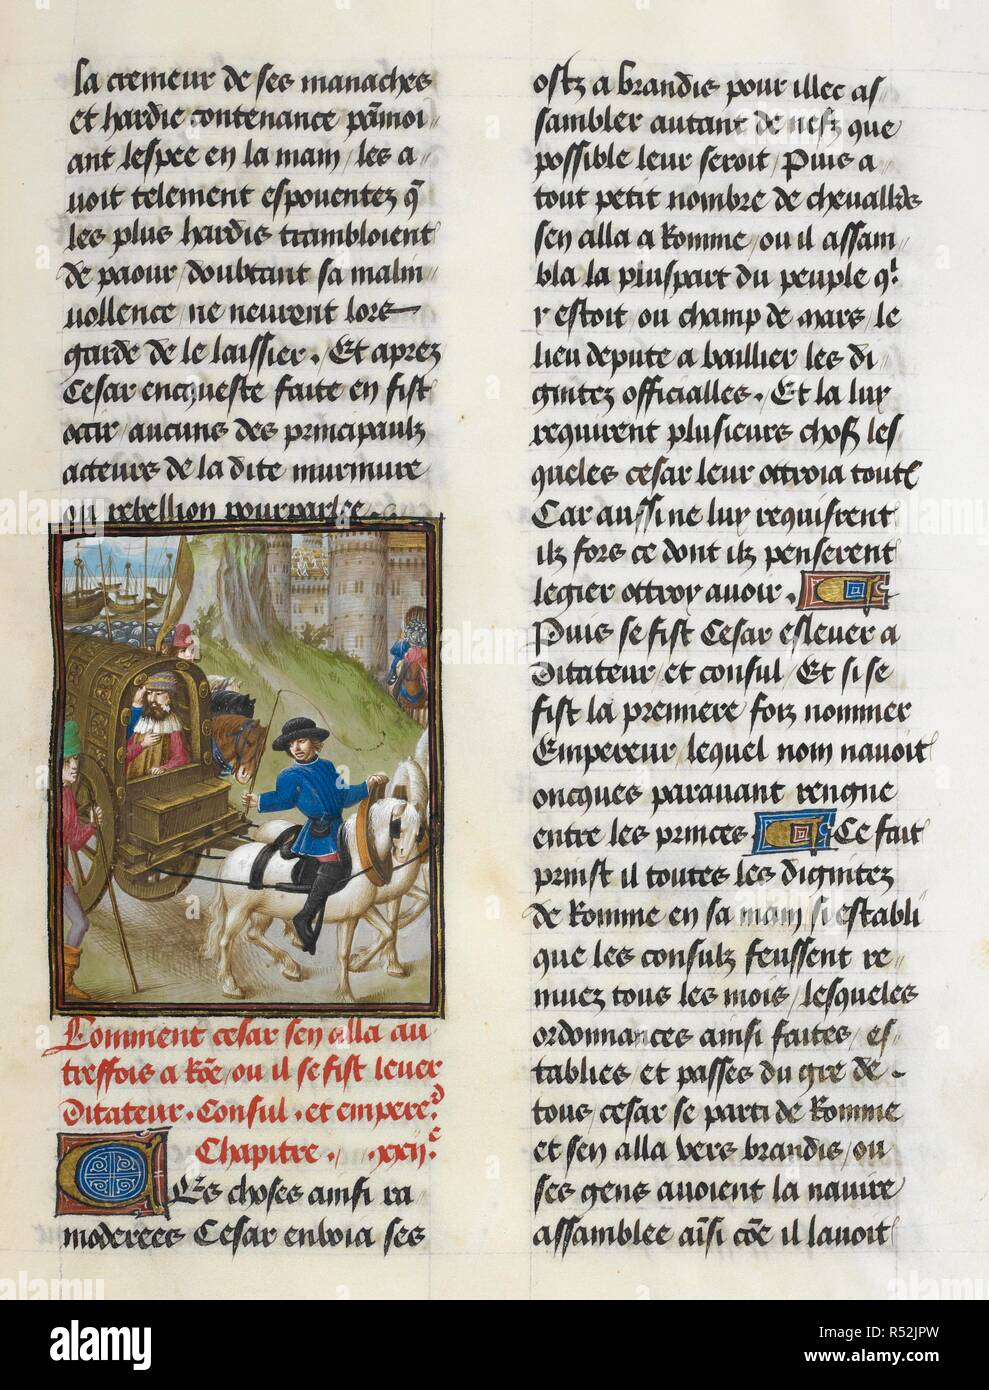 Caesar's trumphant entry into Rome (Book 10, 22). Caesar, translated by Jan Du Quesne (or Jean Duchesne), Bellum Gallicum ( Les commentaires de Cesar ). 1473-1476. Source: Royal 16 G.VIII, f.297. Author: JULIUS CAESAR. Du Quesne, Jehan. Circle of the Master of the London Wavrin. - Stock Image